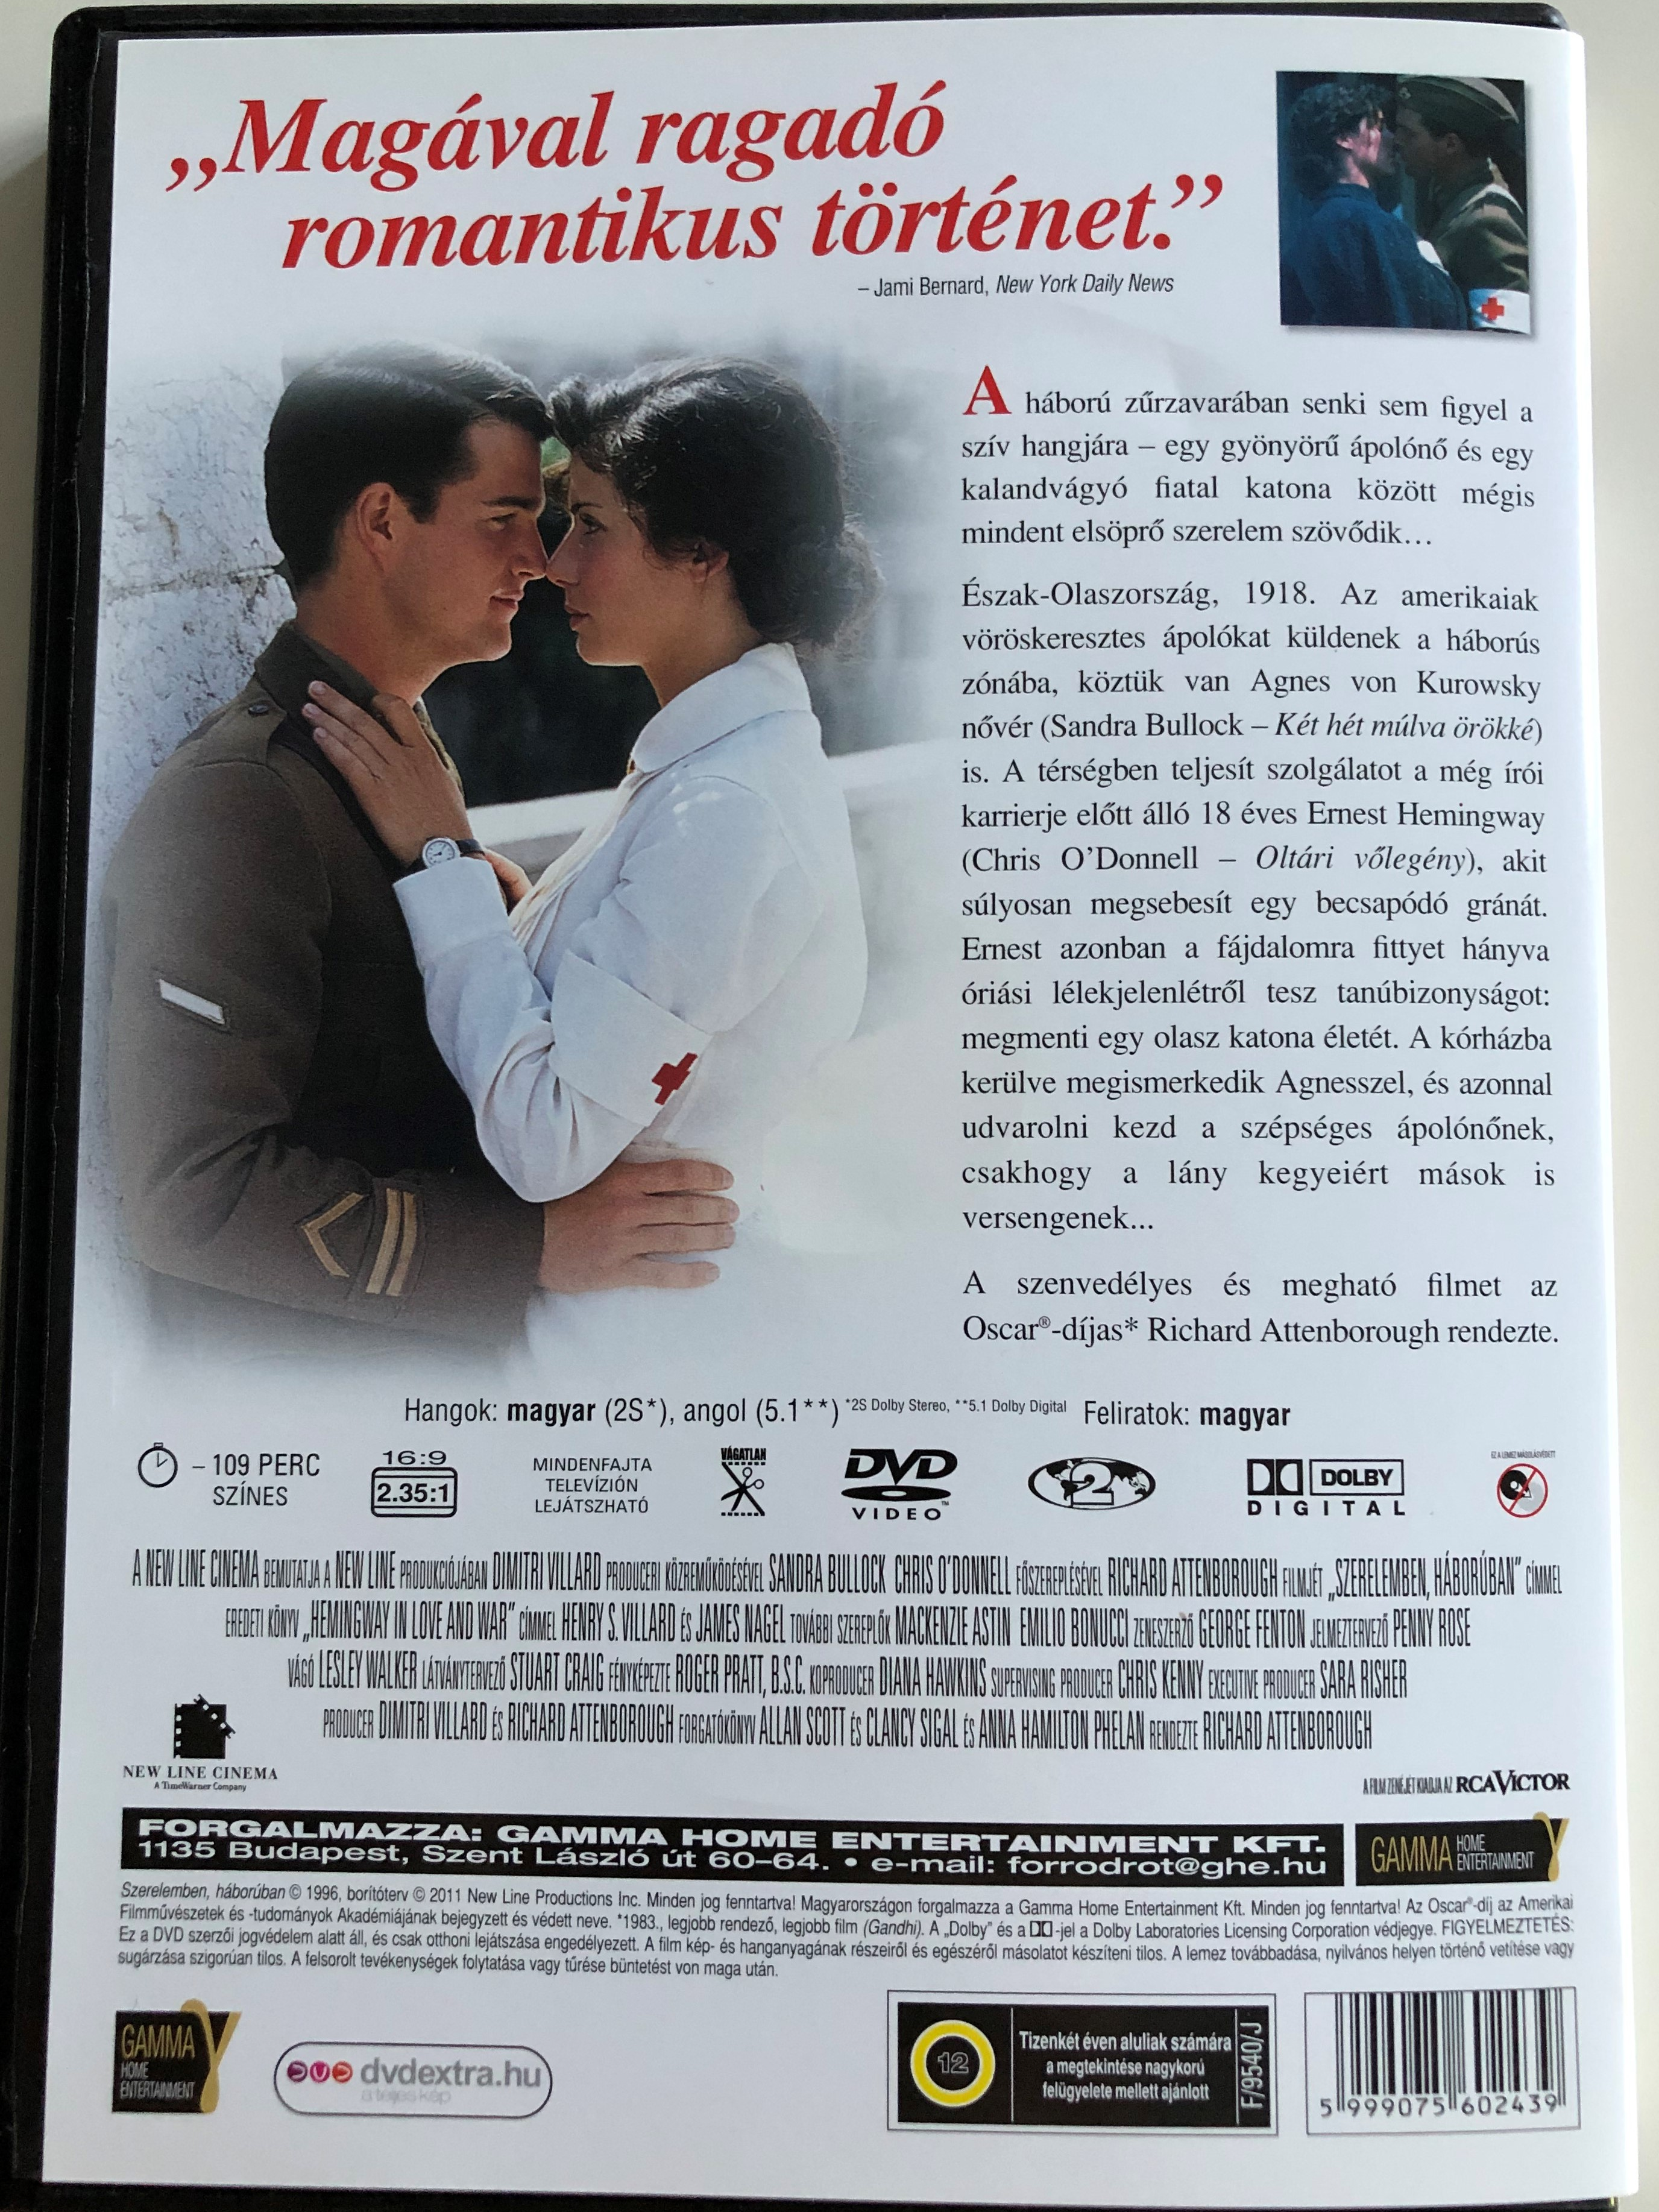 in-love-and-war-dvd-1996-szerelemben-h-bor-ban-directed-by-richard-attenborough-starring-sandra-bullock-chris-o-donnell-mackenzie-astin-emilio-bonucci-2-.jpg